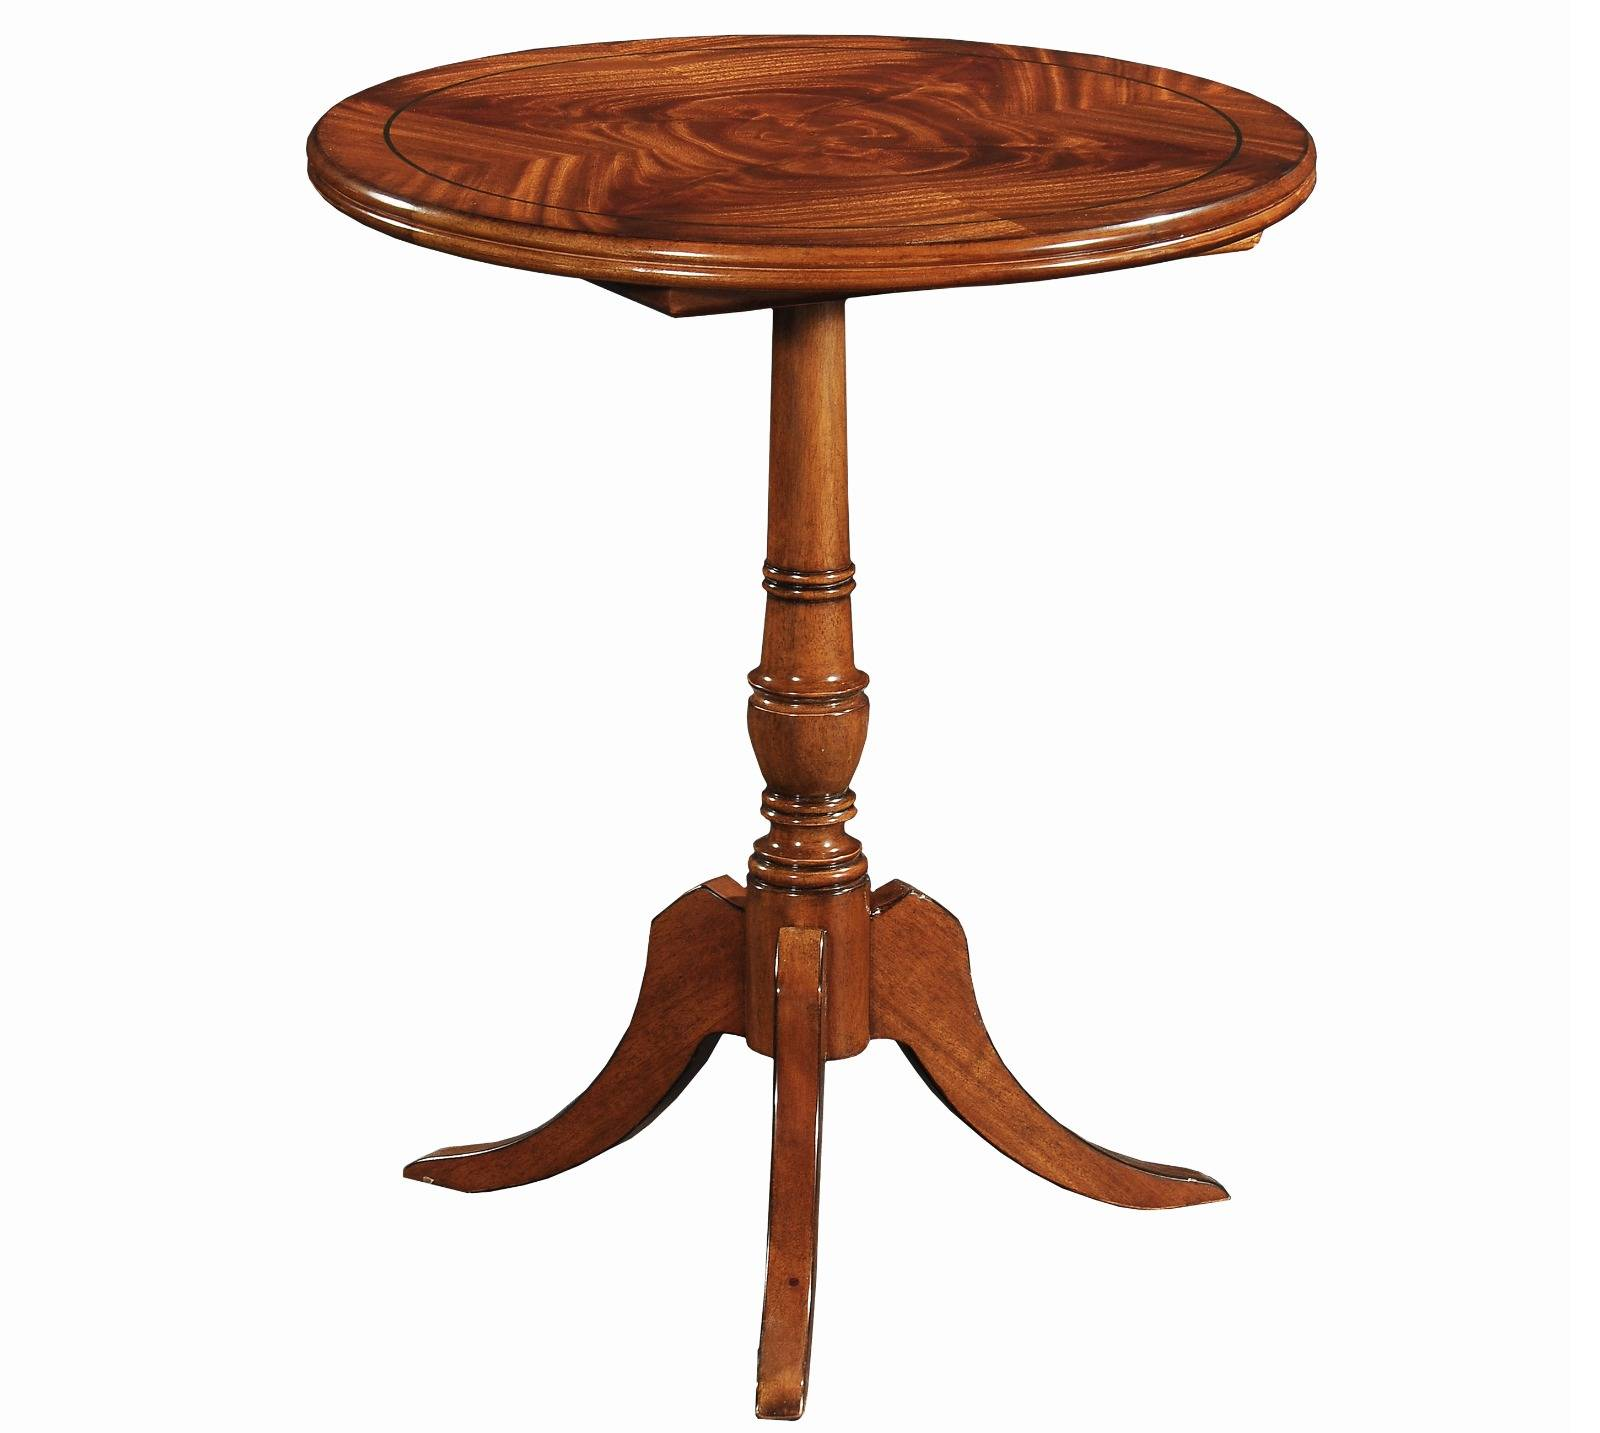 Mauretania wine table - small - In mahogany